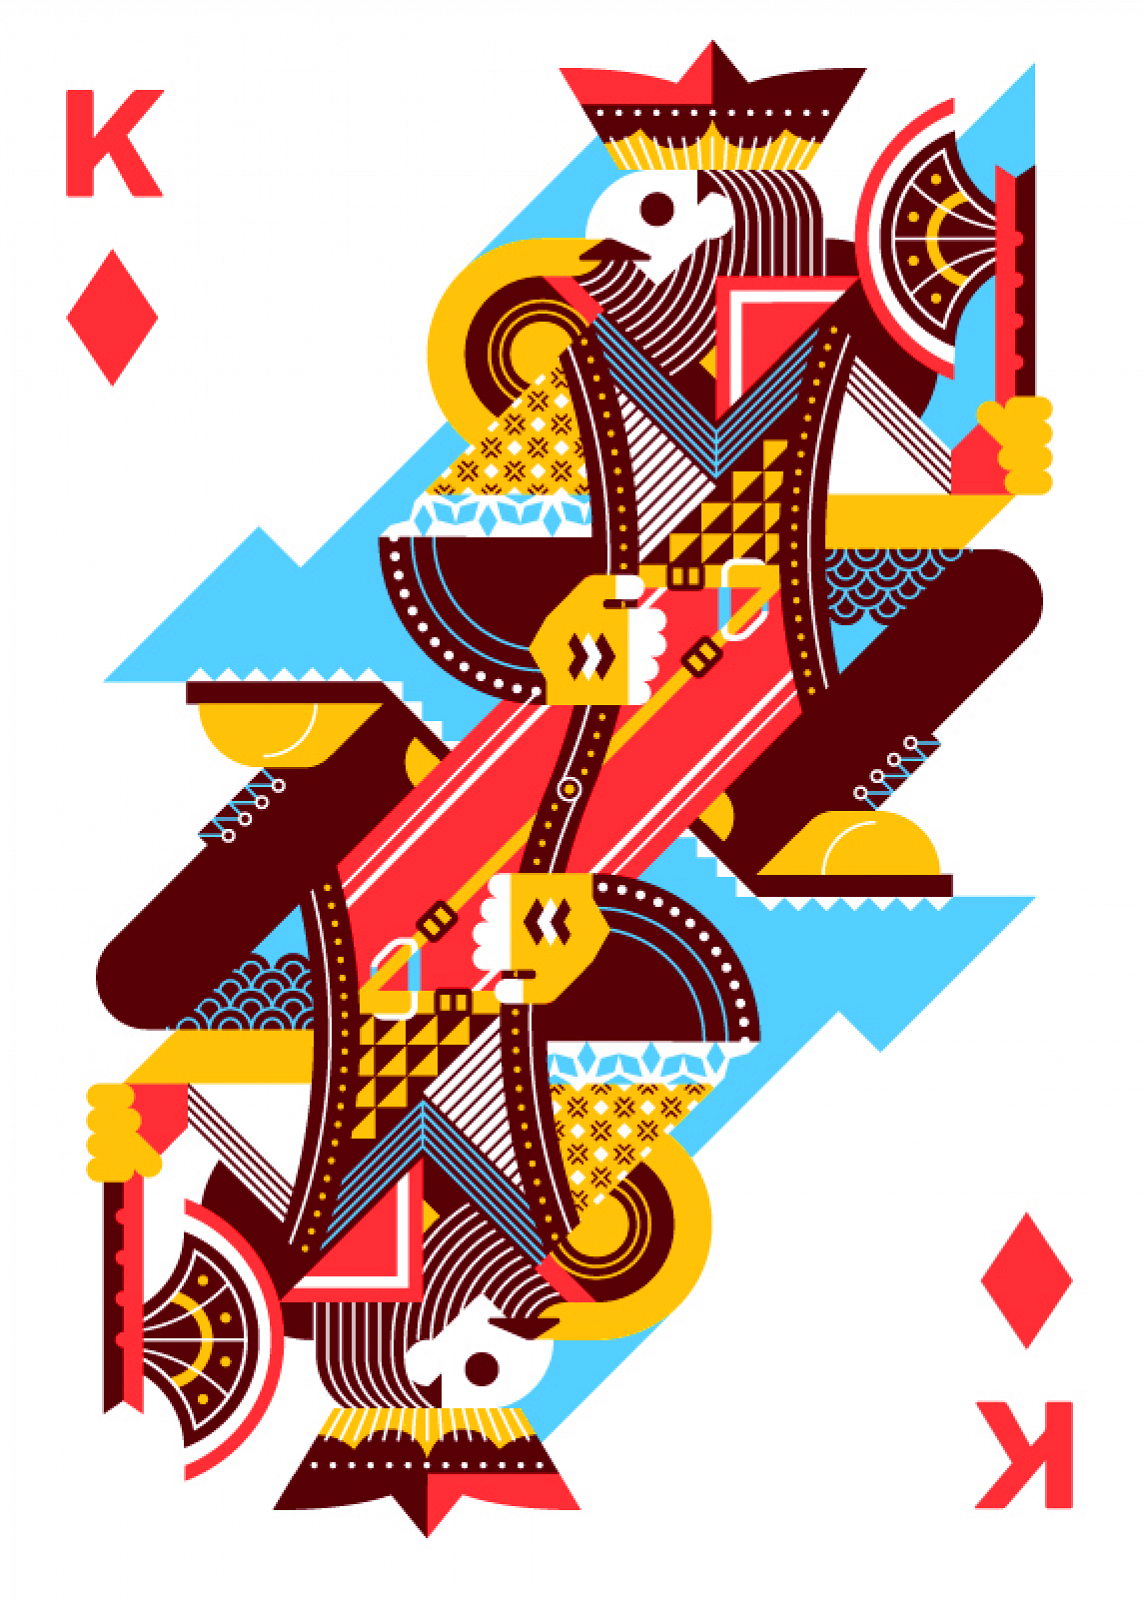 more deck of cards kingdiamond.png